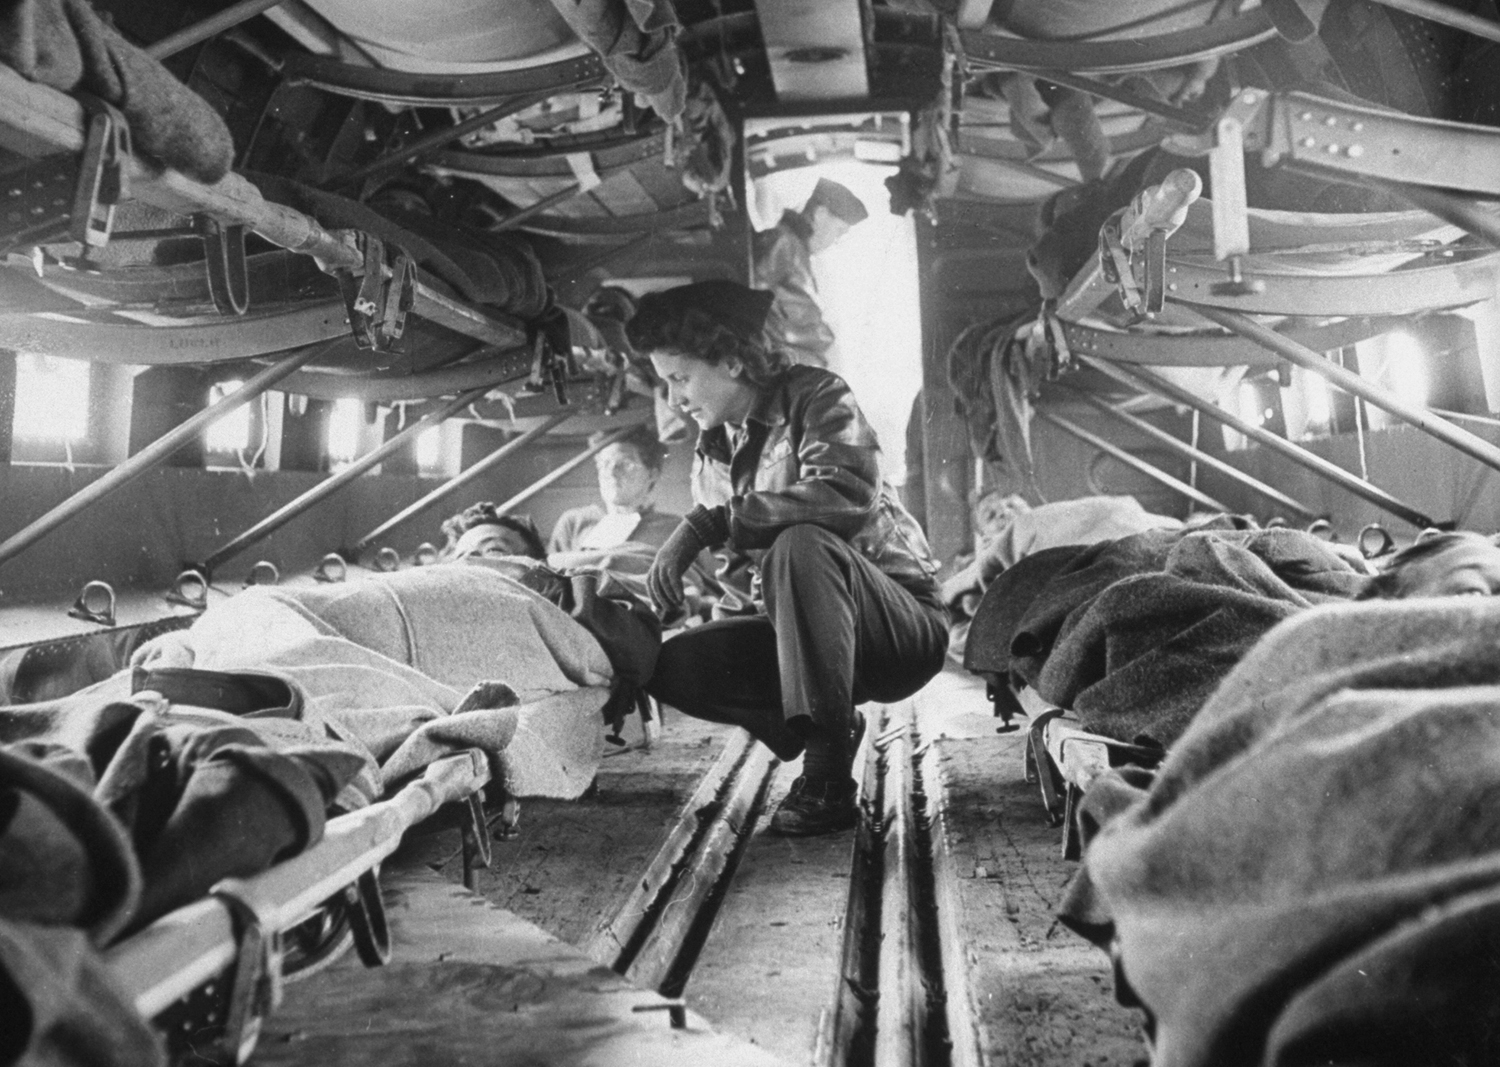 Somewhere over North Africa an American  flying nurse,  Second Lieut. Julia Corinne Riley, 23, checks on patients aboard a specially outfitted C-47 transport plane, used to ferry wounded men to hospitals, spring 1943.